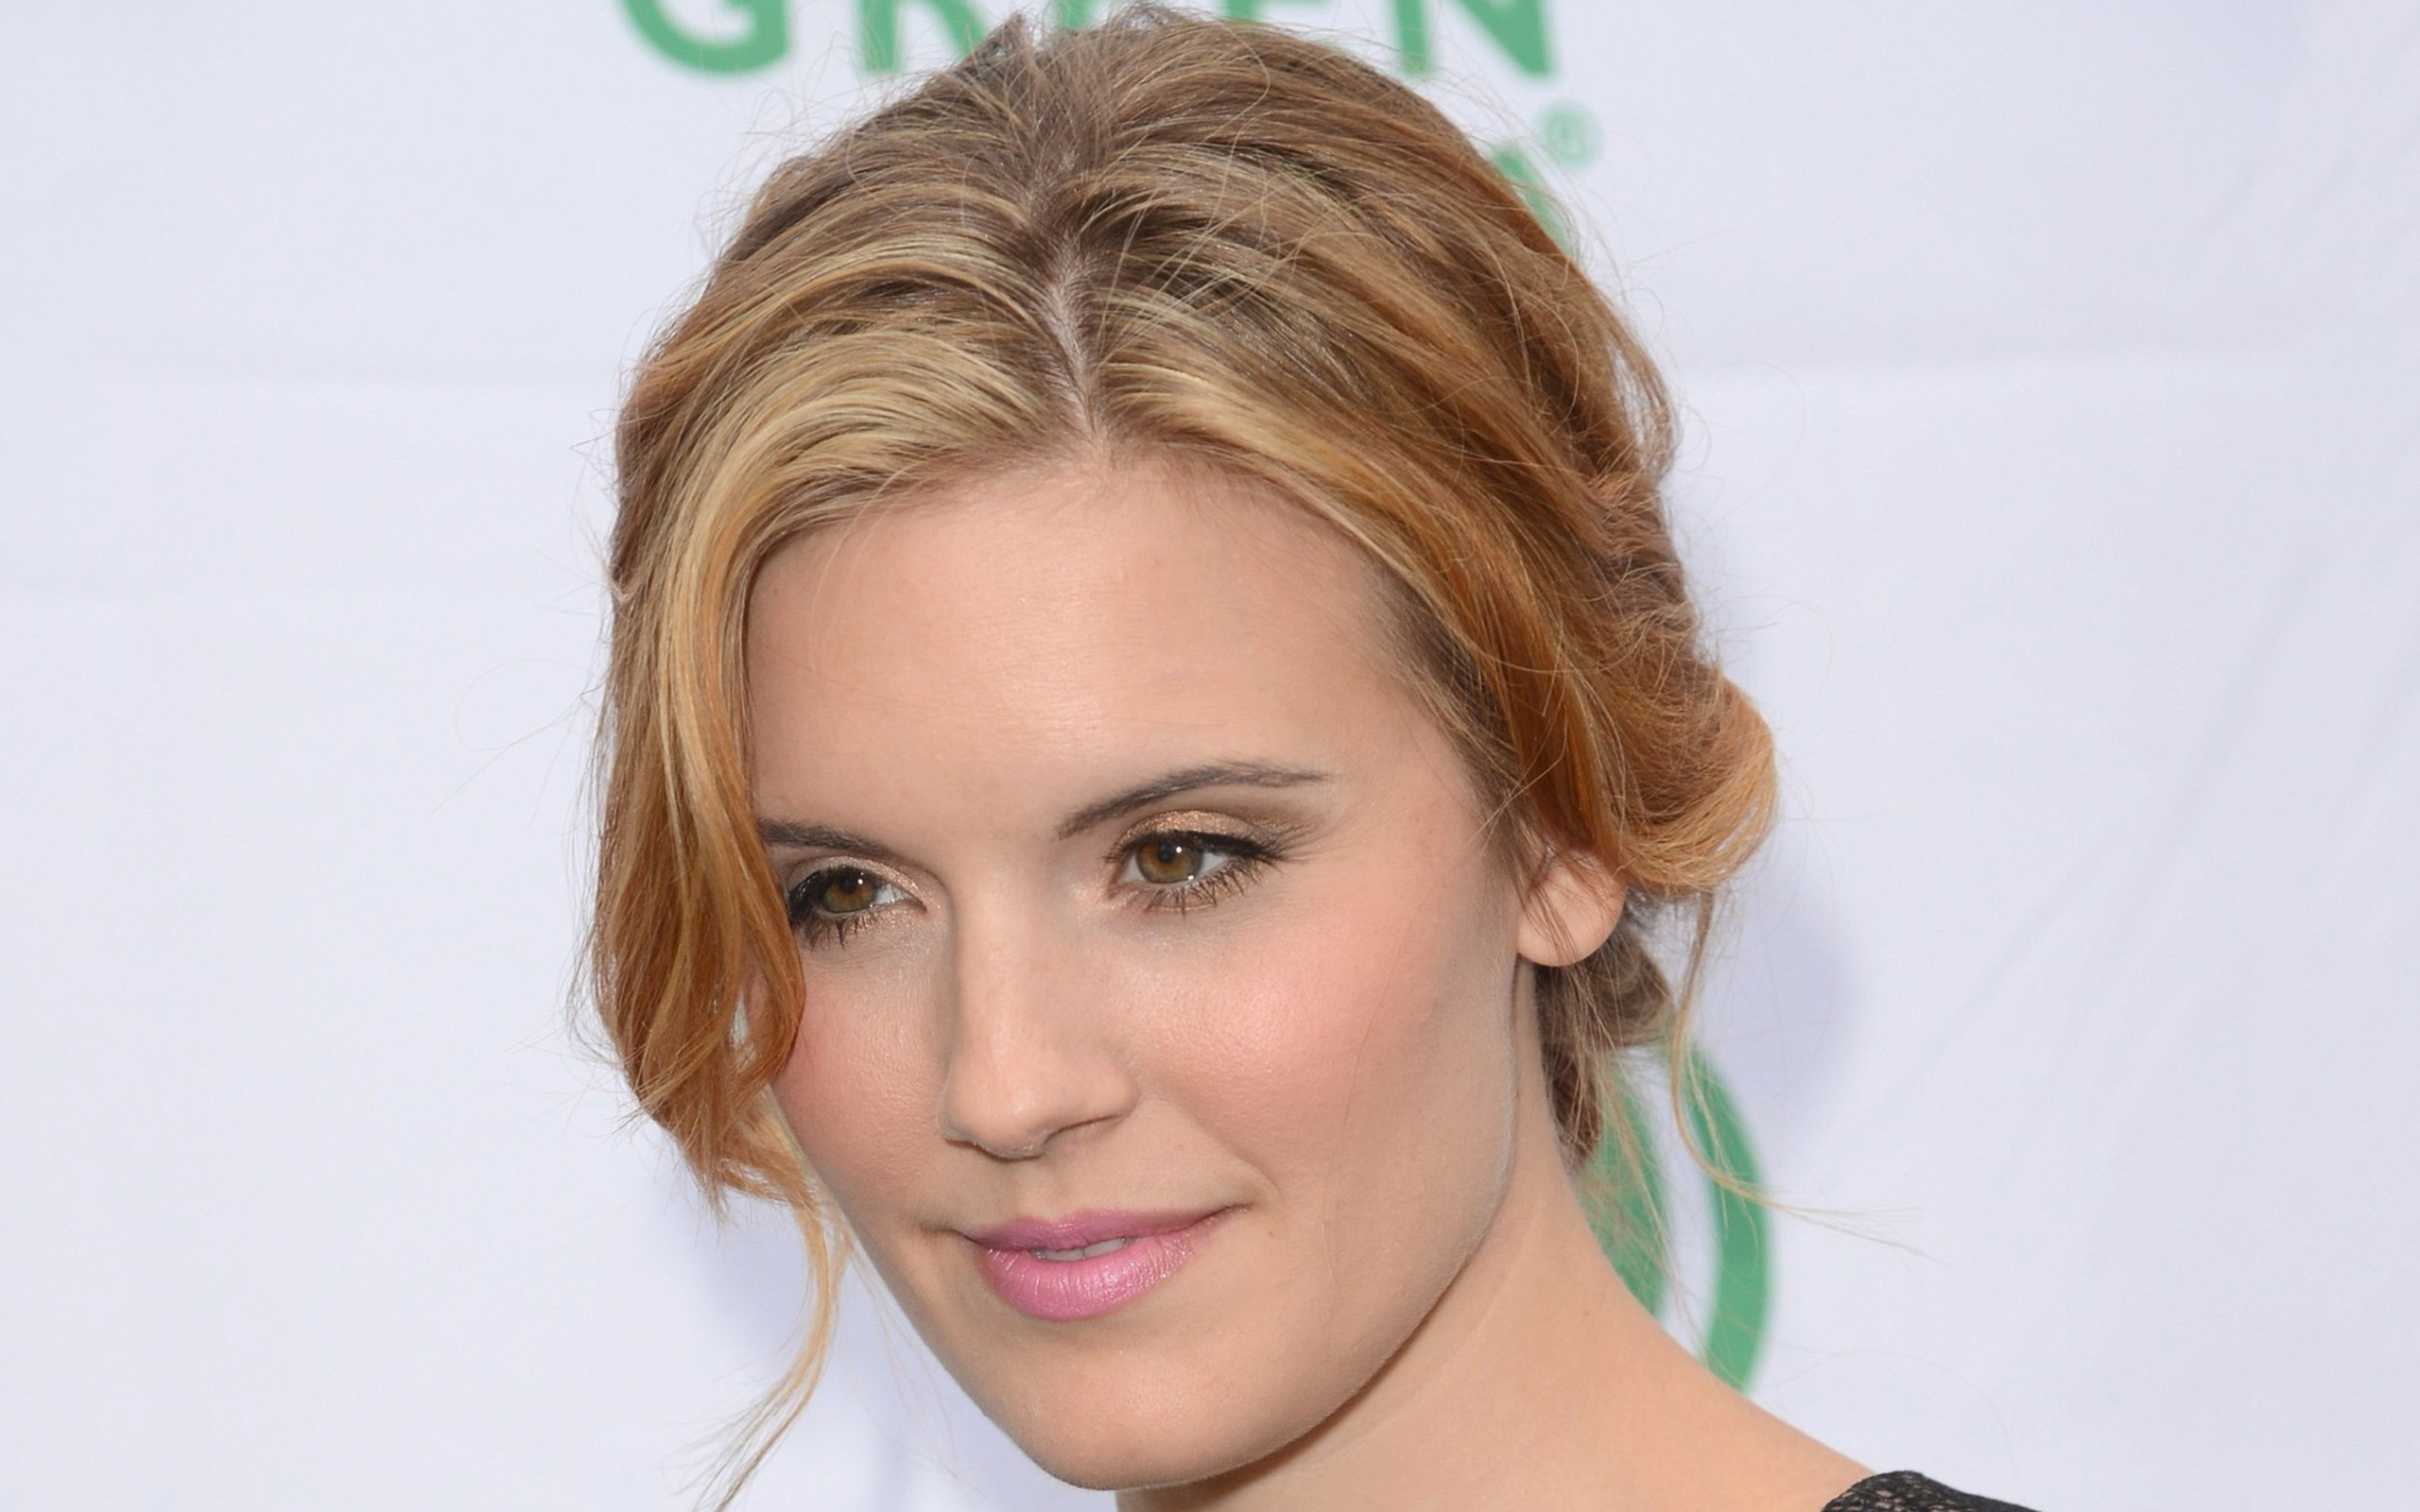 maggie grace face wallpaper background 50526